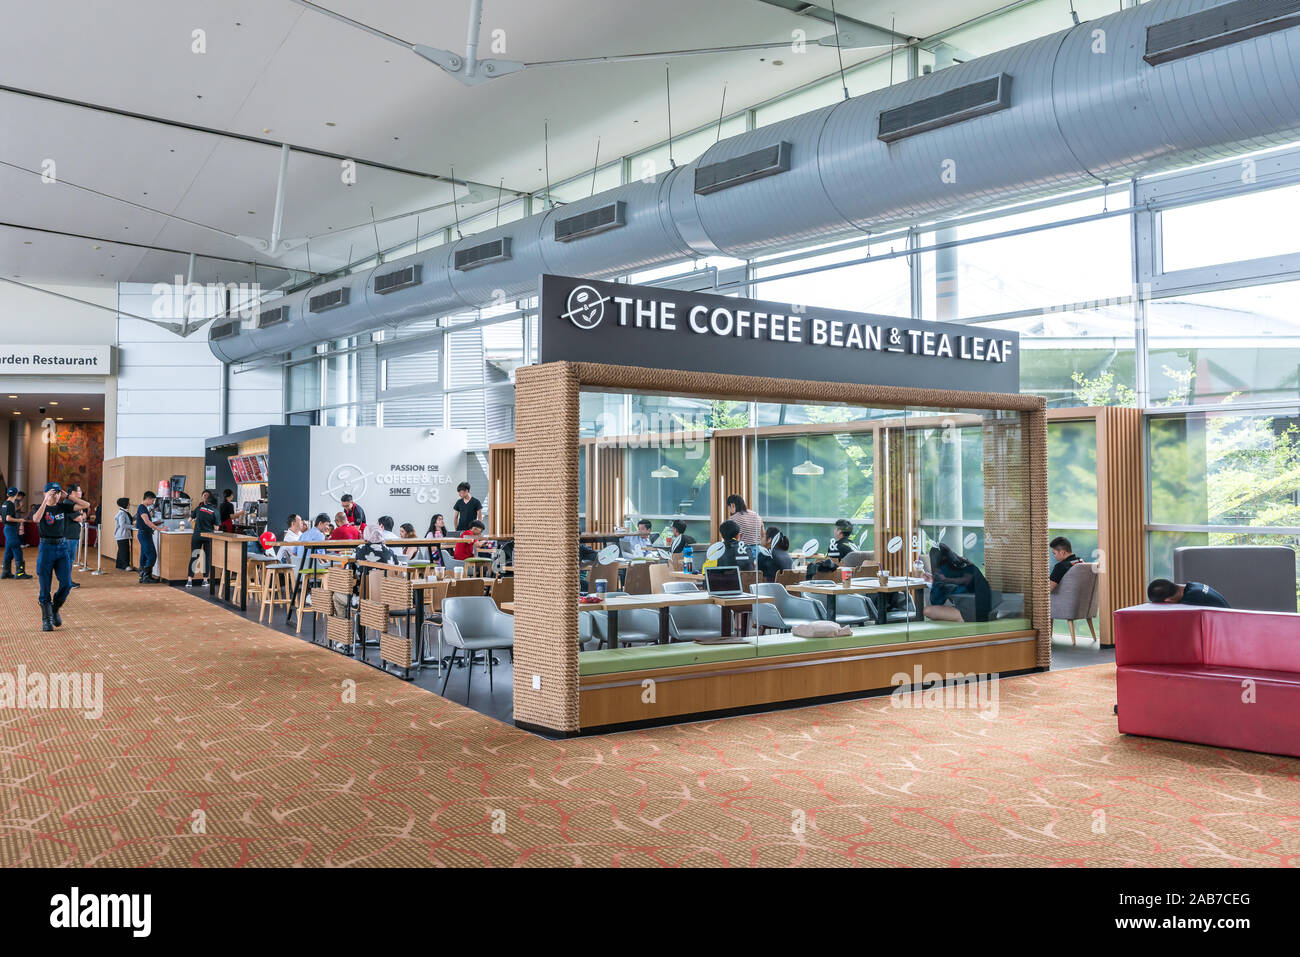 Asia Singapore Nov 23 2019 The Coffee Bean Tea Leaf Cbtl Franchise Cafe Store In Singapore Expo Cbtl Is An American Coffee Chain Founded In Stock Photo Alamy